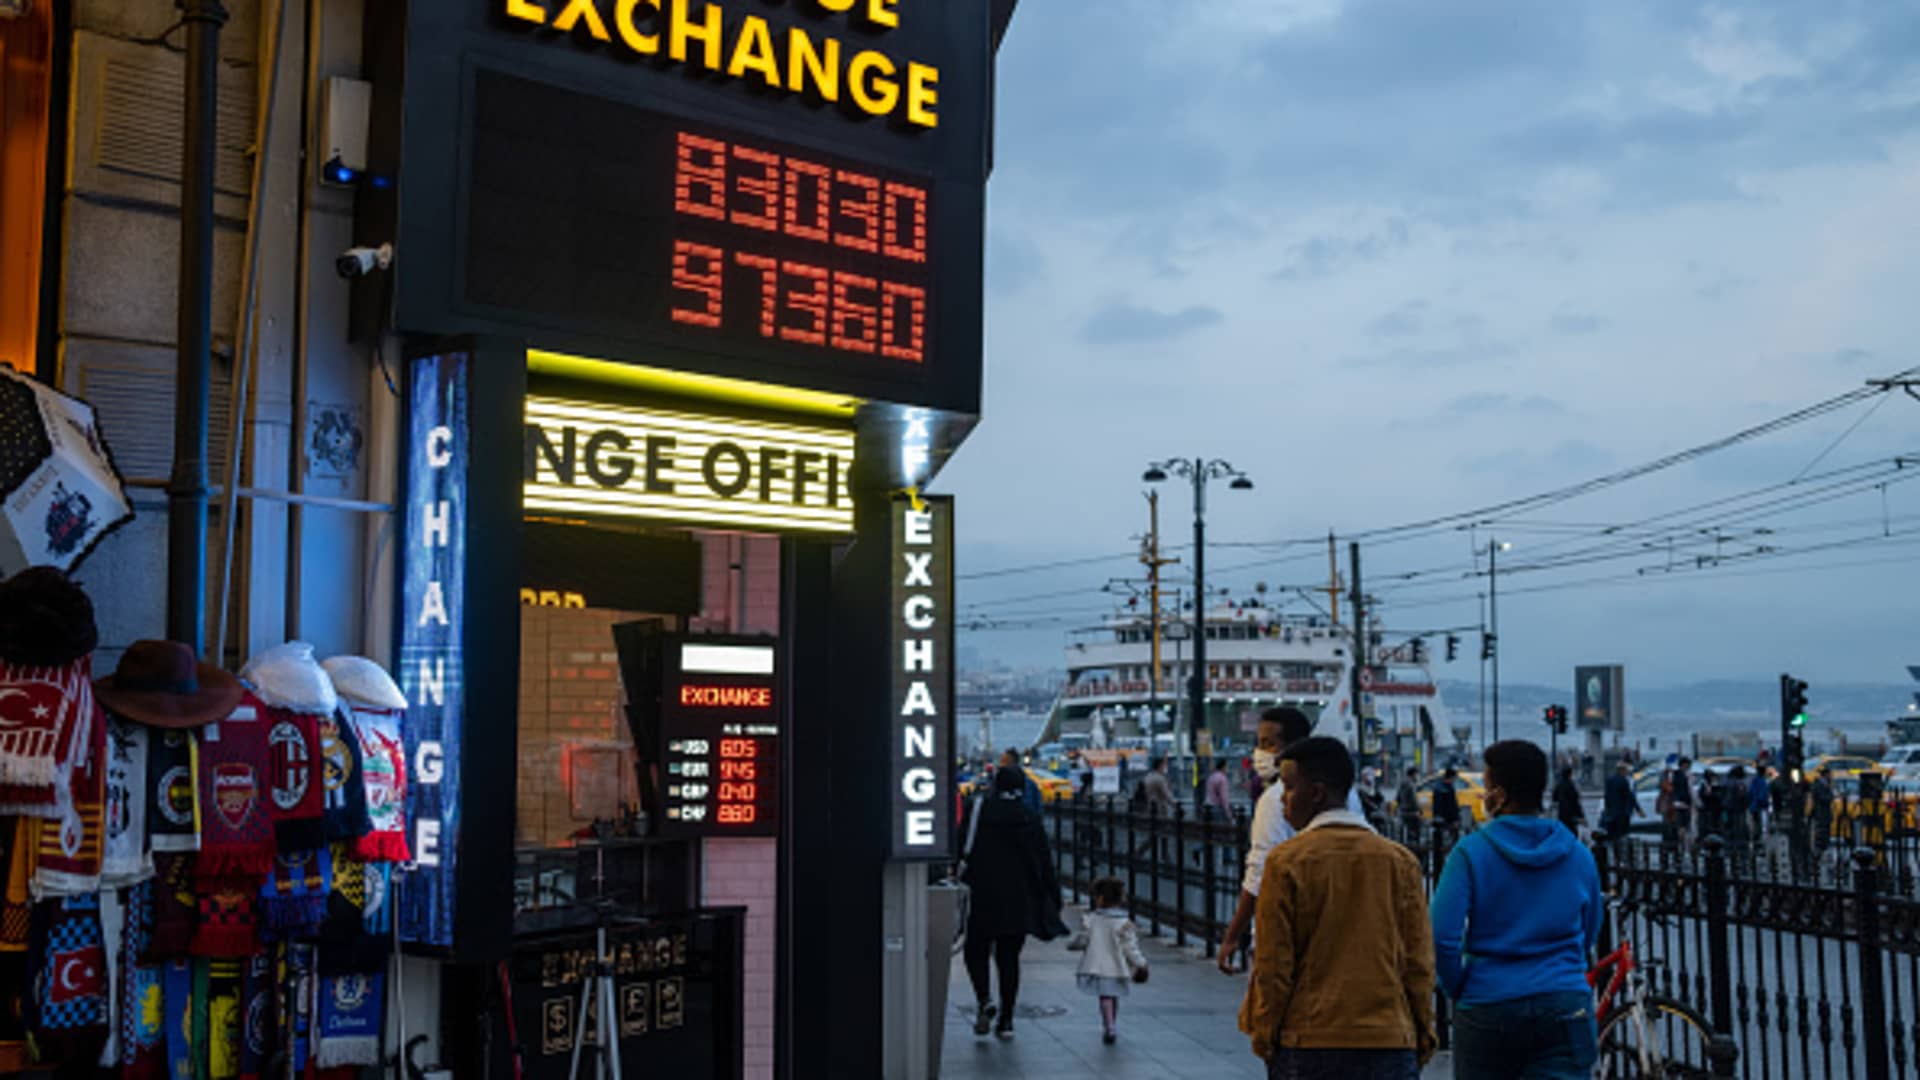 Exchange offices in Istanbul, Turkey seen on October 28, 2020. Due to the increase in exchange rates and the economic instability, people change currency and buy Turkish lira.